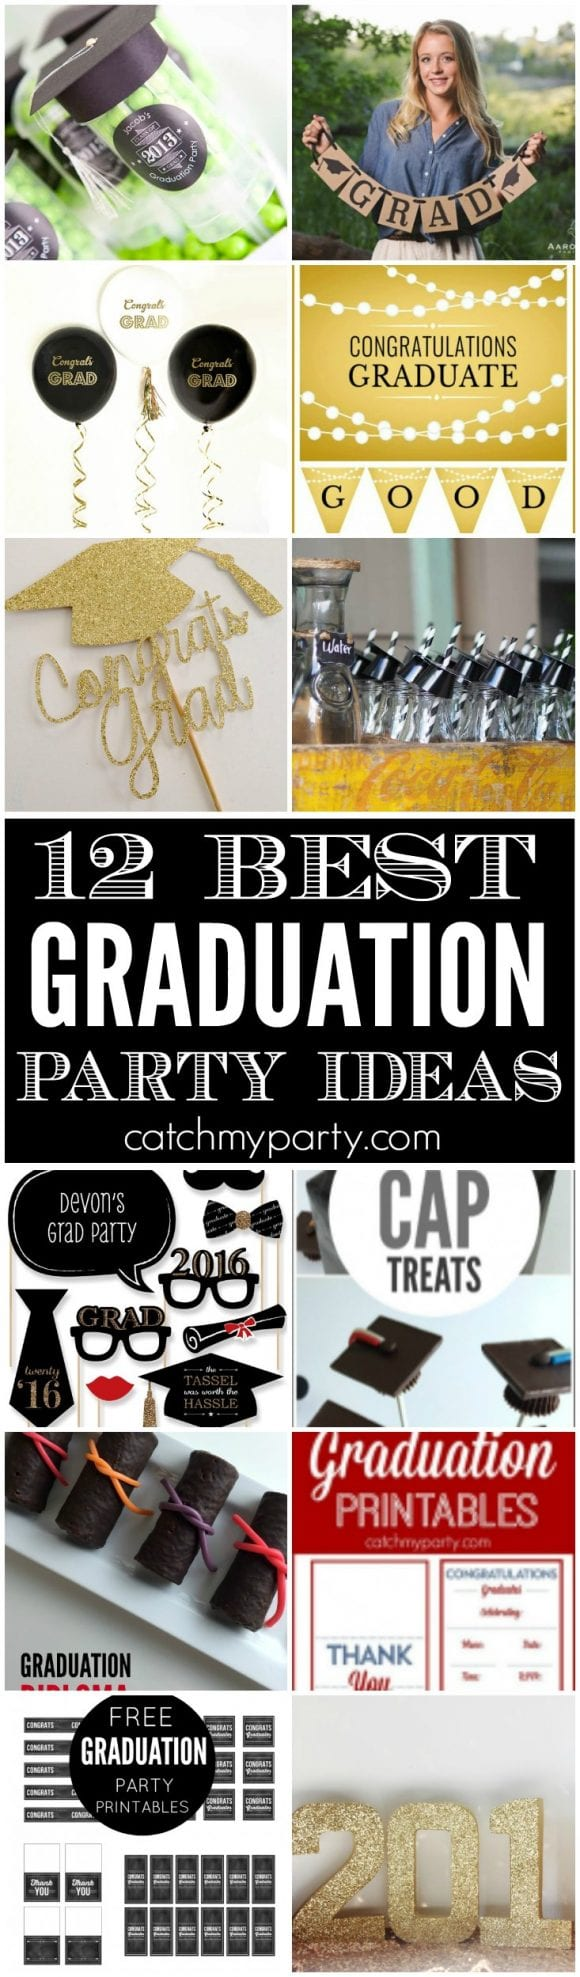 12 Best Graduation Party Ideas | CatchMyParty.com